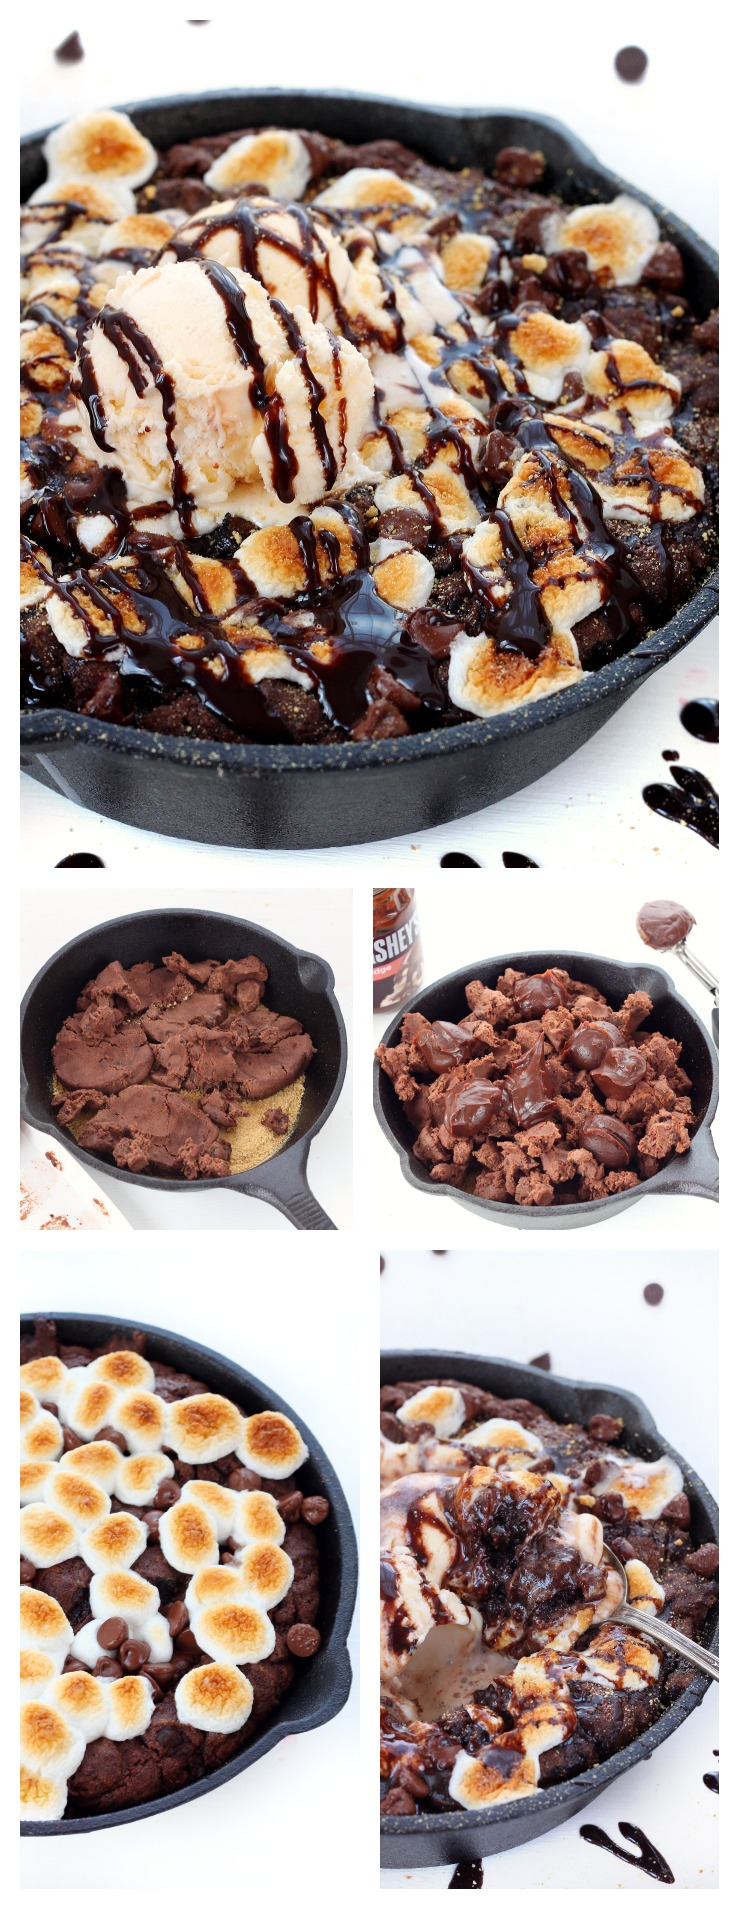 Triple chocolate smores pizookie